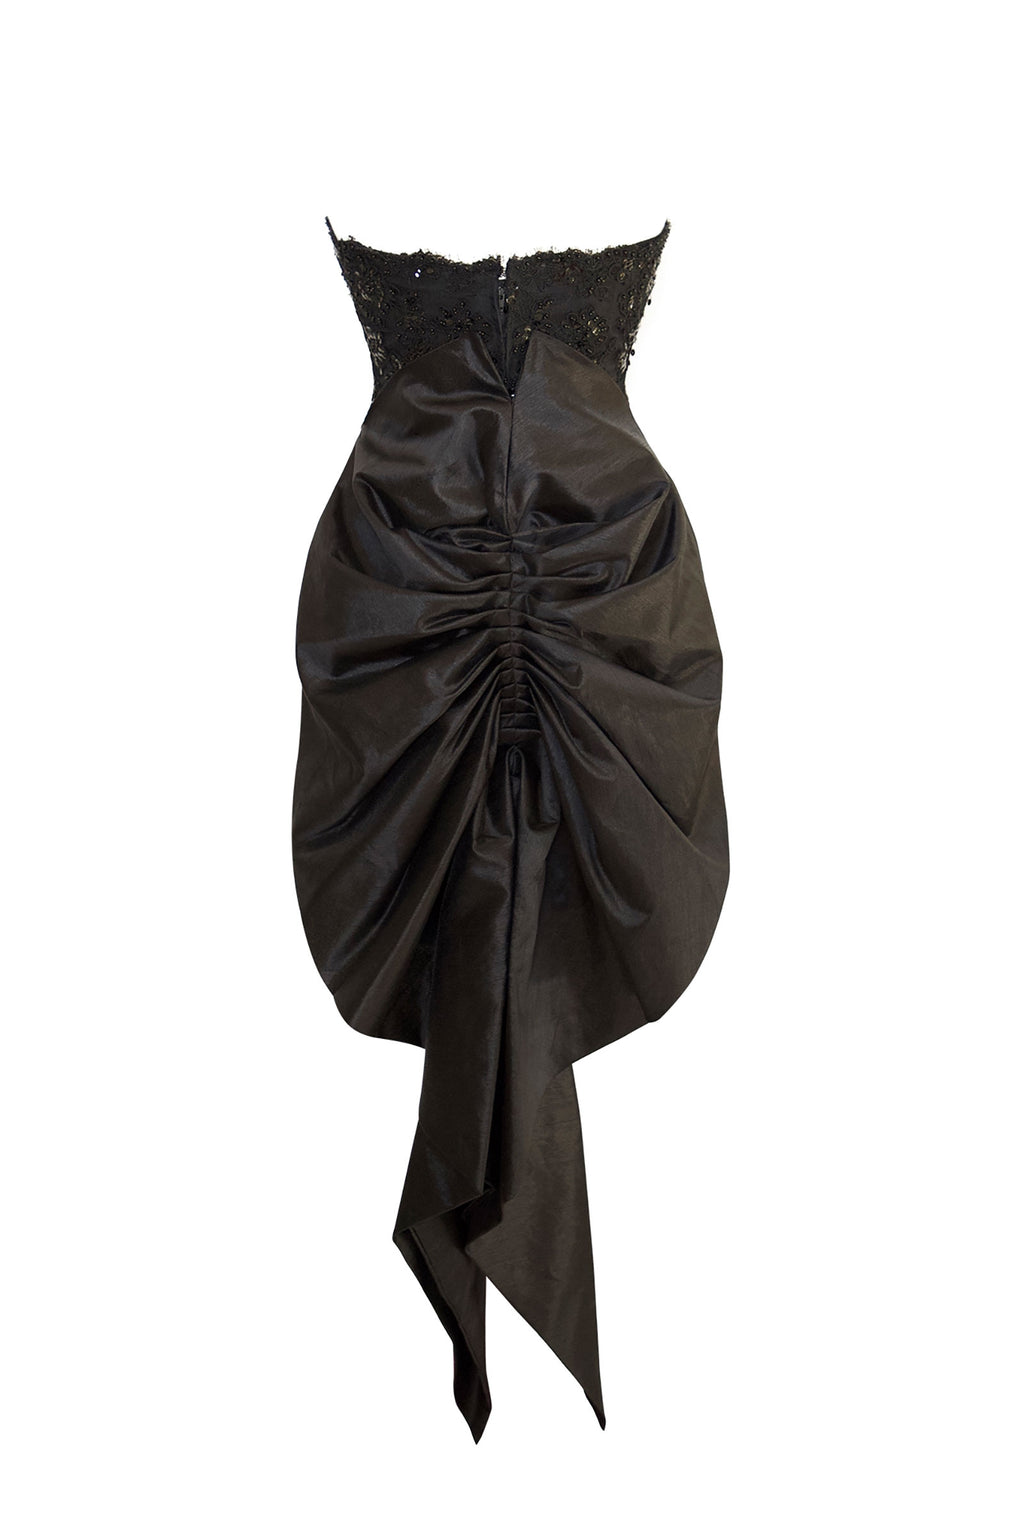 Loris Azzaro Vintage Black Dress